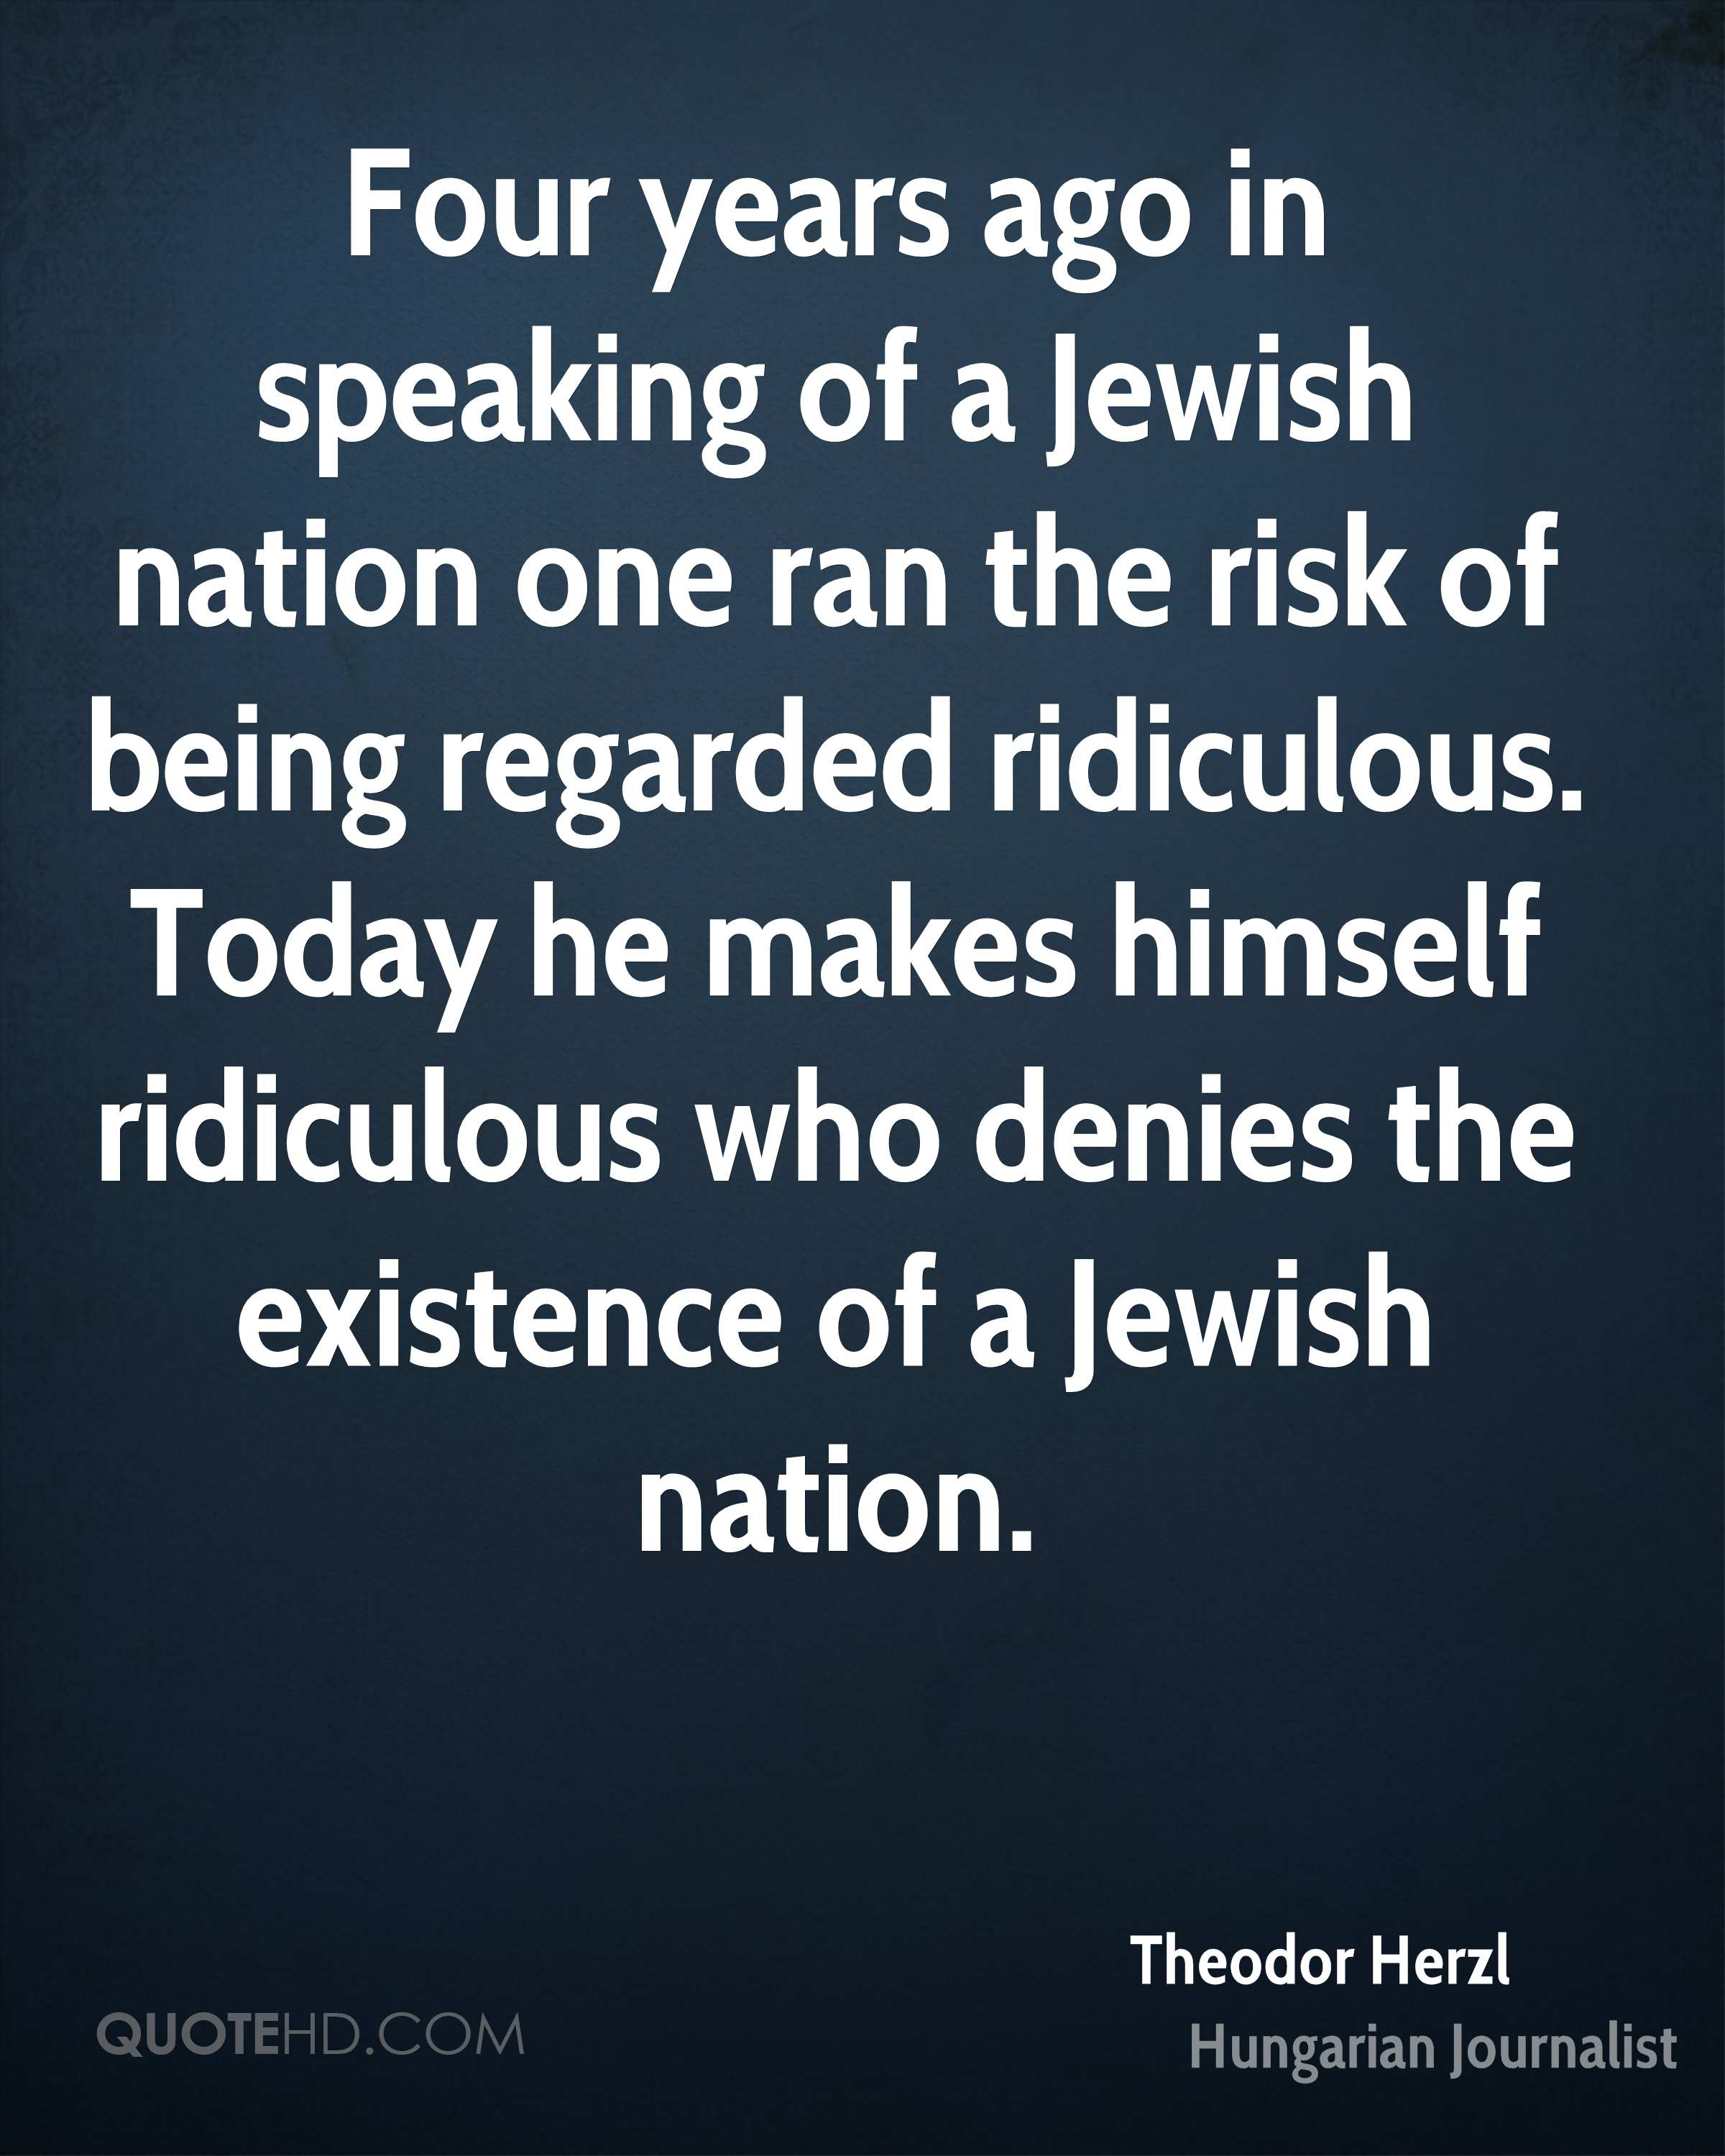 Four years ago in speaking of a Jewish nation one ran the risk of being regarded ridiculous. Today he makes himself ridiculous who denies the existence of a Jewish nation.